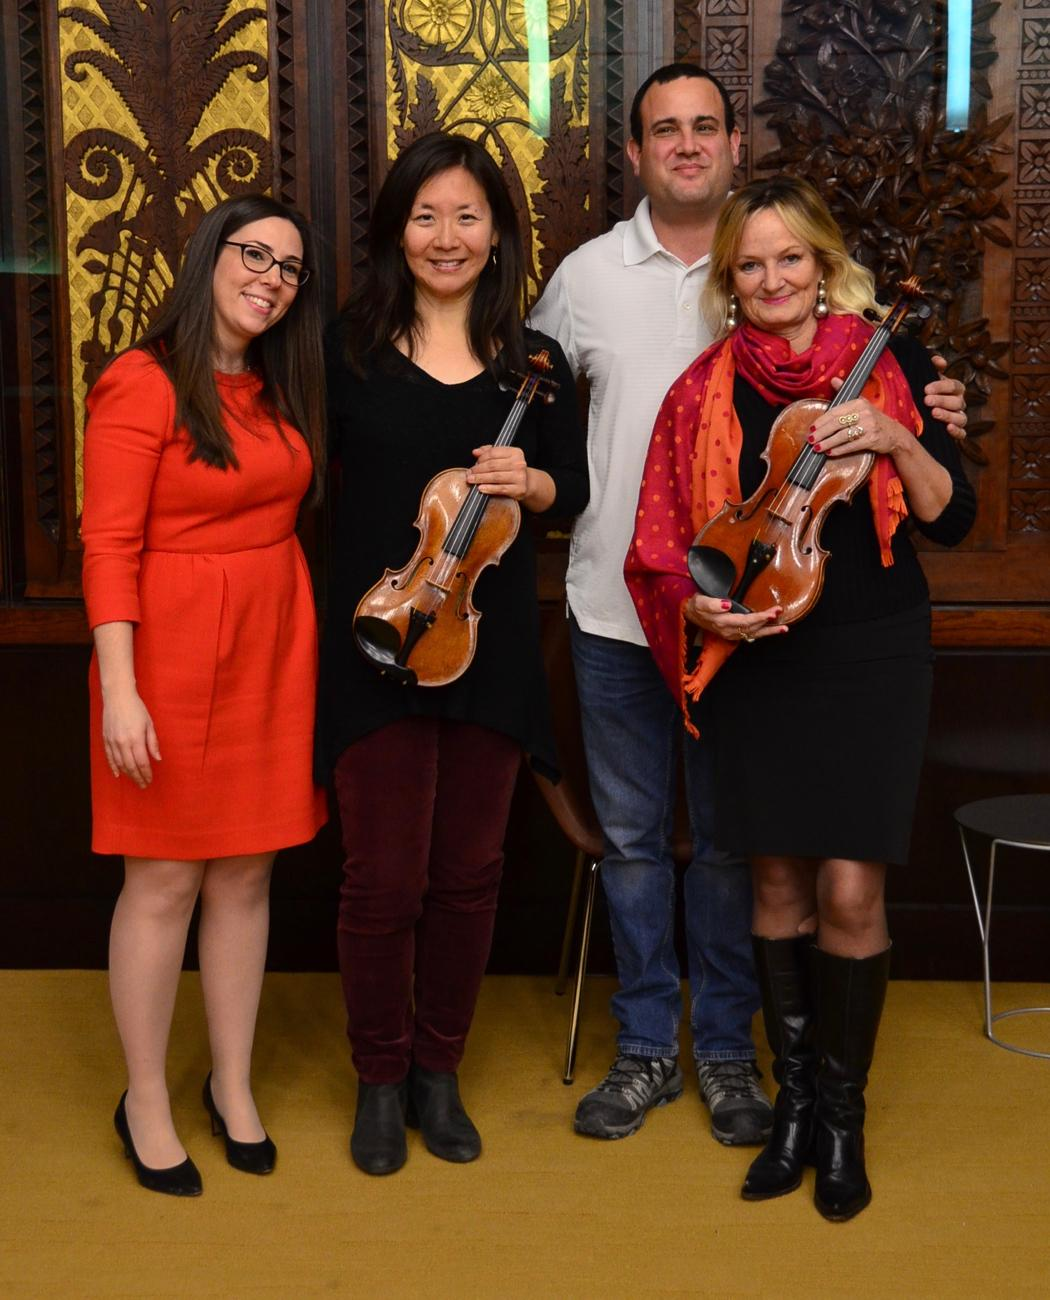 Sarah Weiss, Sujean Kim, Avshalom Weinstein, and Heidi Yenny / Image: Leah Zipperstein, Cincinnati Refined // Published: 1.21.18